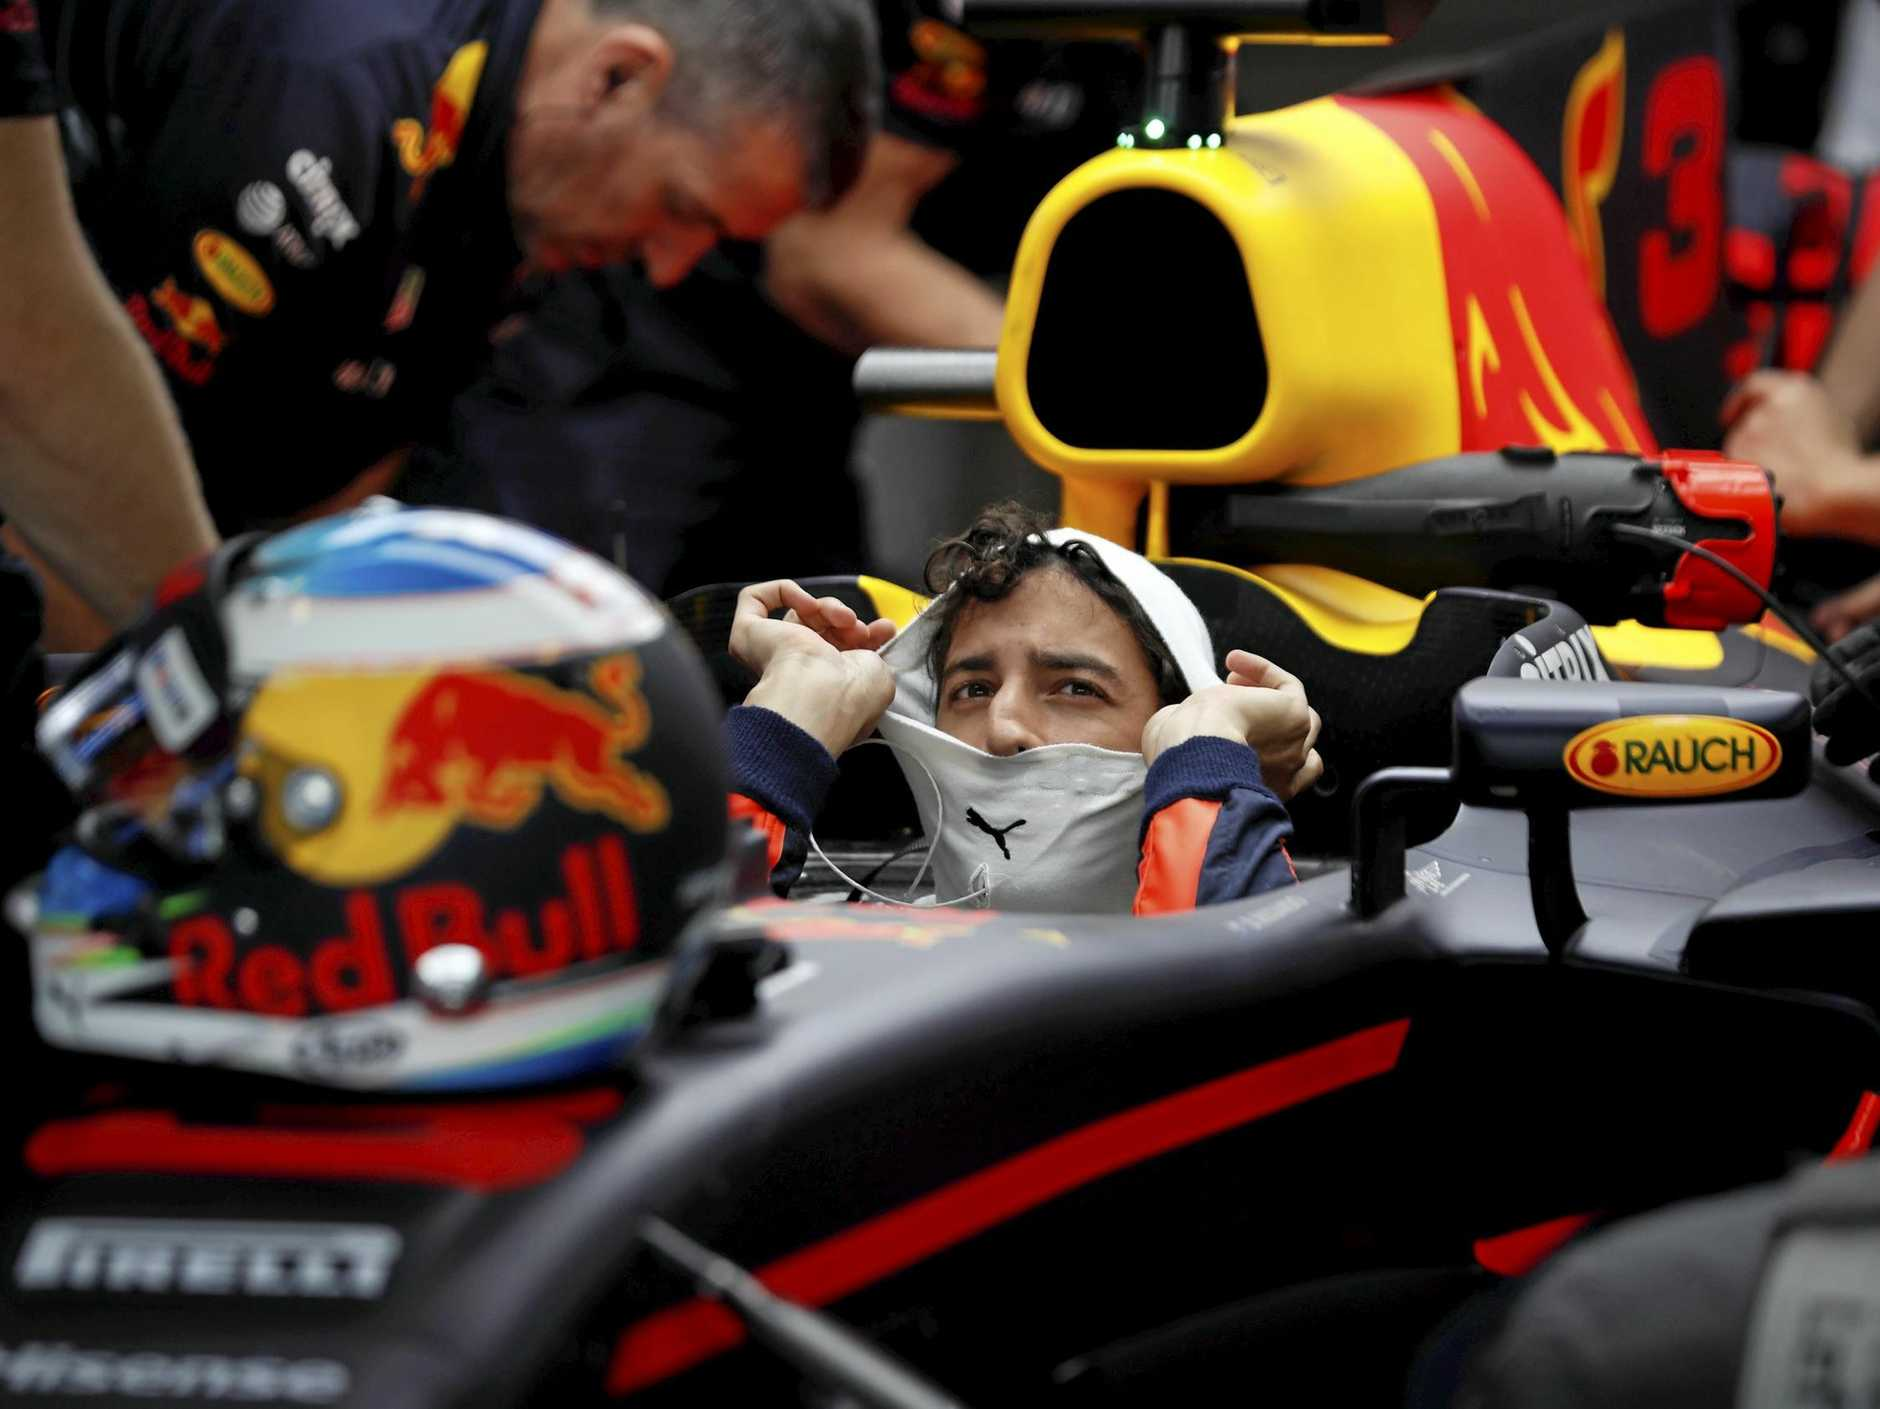 Red Bull driver Daniel Ricciardo of Australia sits in his car.